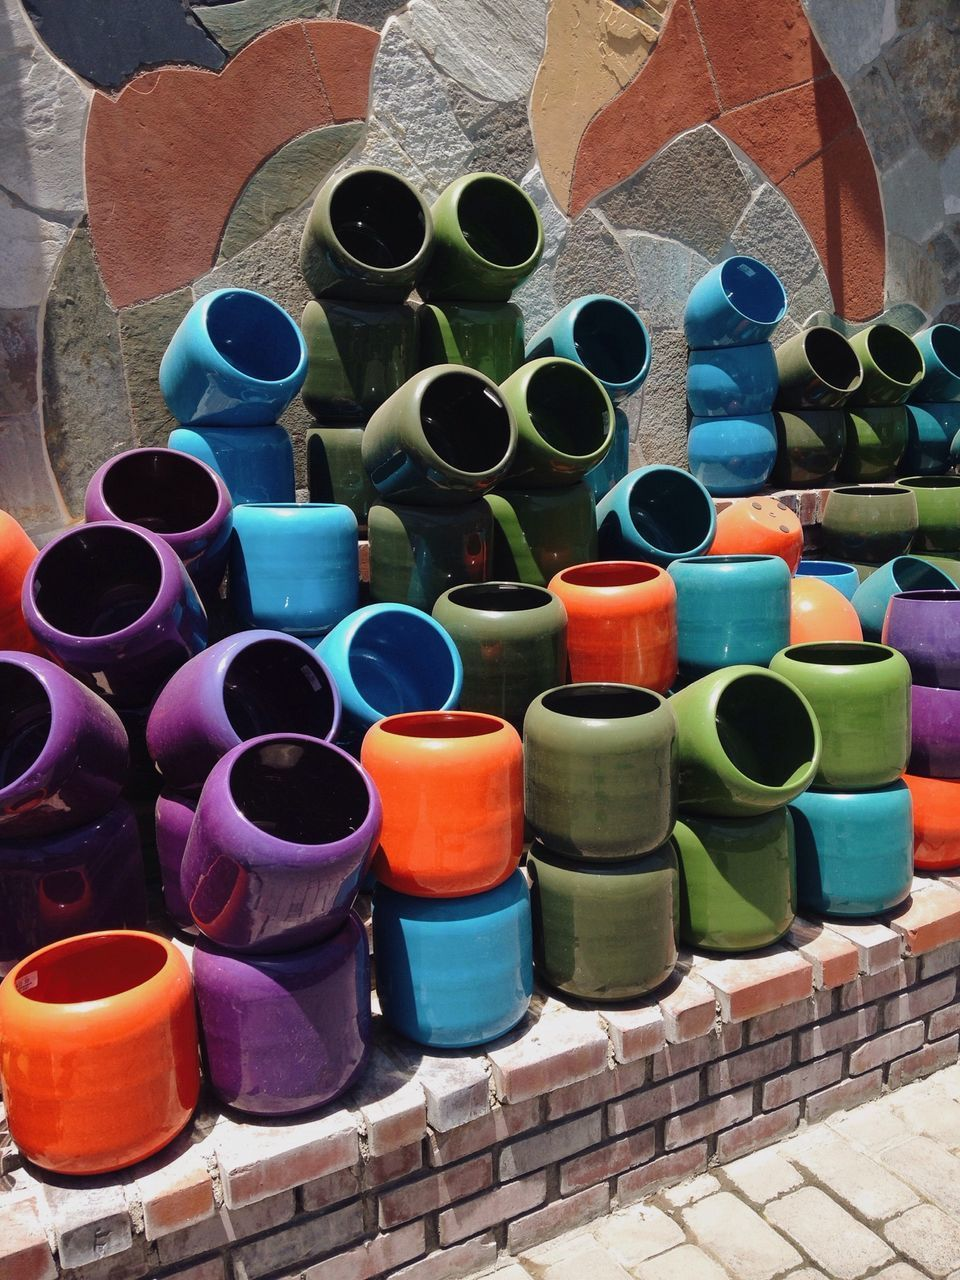 large group of objects, arrangement, multi colored, in a row, abundance, variation, side by side, order, choice, repetition, colorful, retail, collection, outdoors, day, no people, full frame, backgrounds